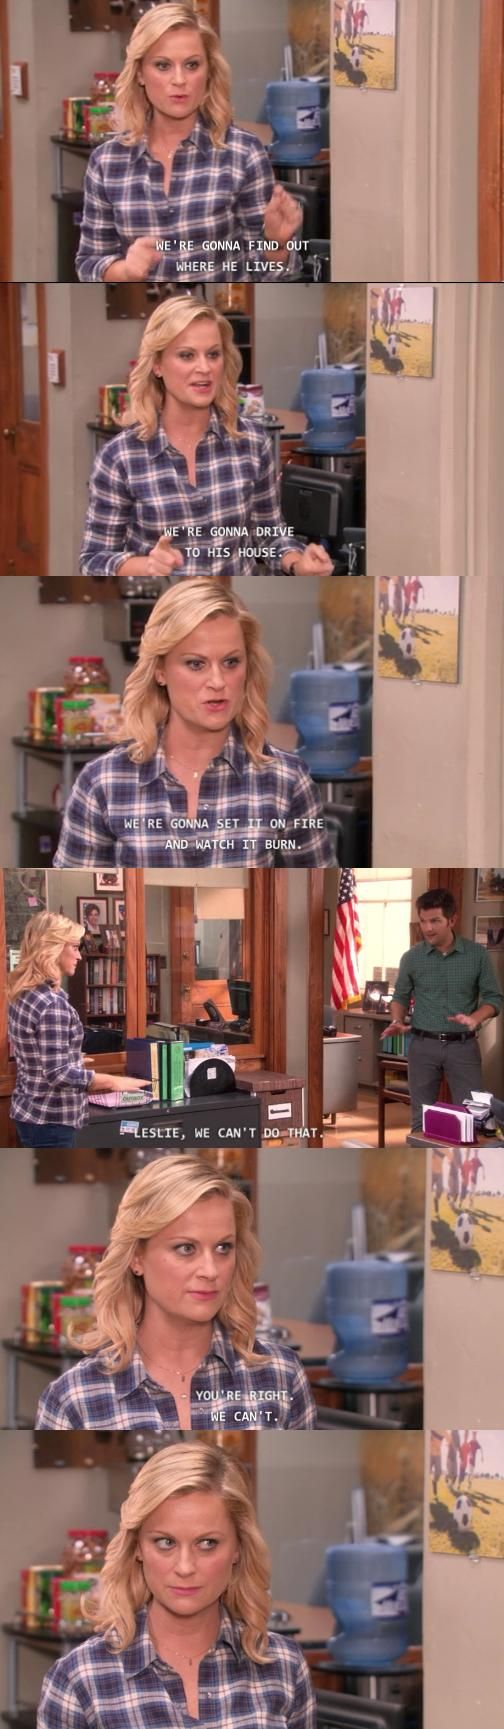 "Parks and Recreation Season Five Episode 8: Pawnee Commons. ""We're gonna find out where he lives, we're gonna drive to his house, we're gonna set it on fire and watch it burn."" ""Leslie, we can't do that."" ""You're right...we can't..."""